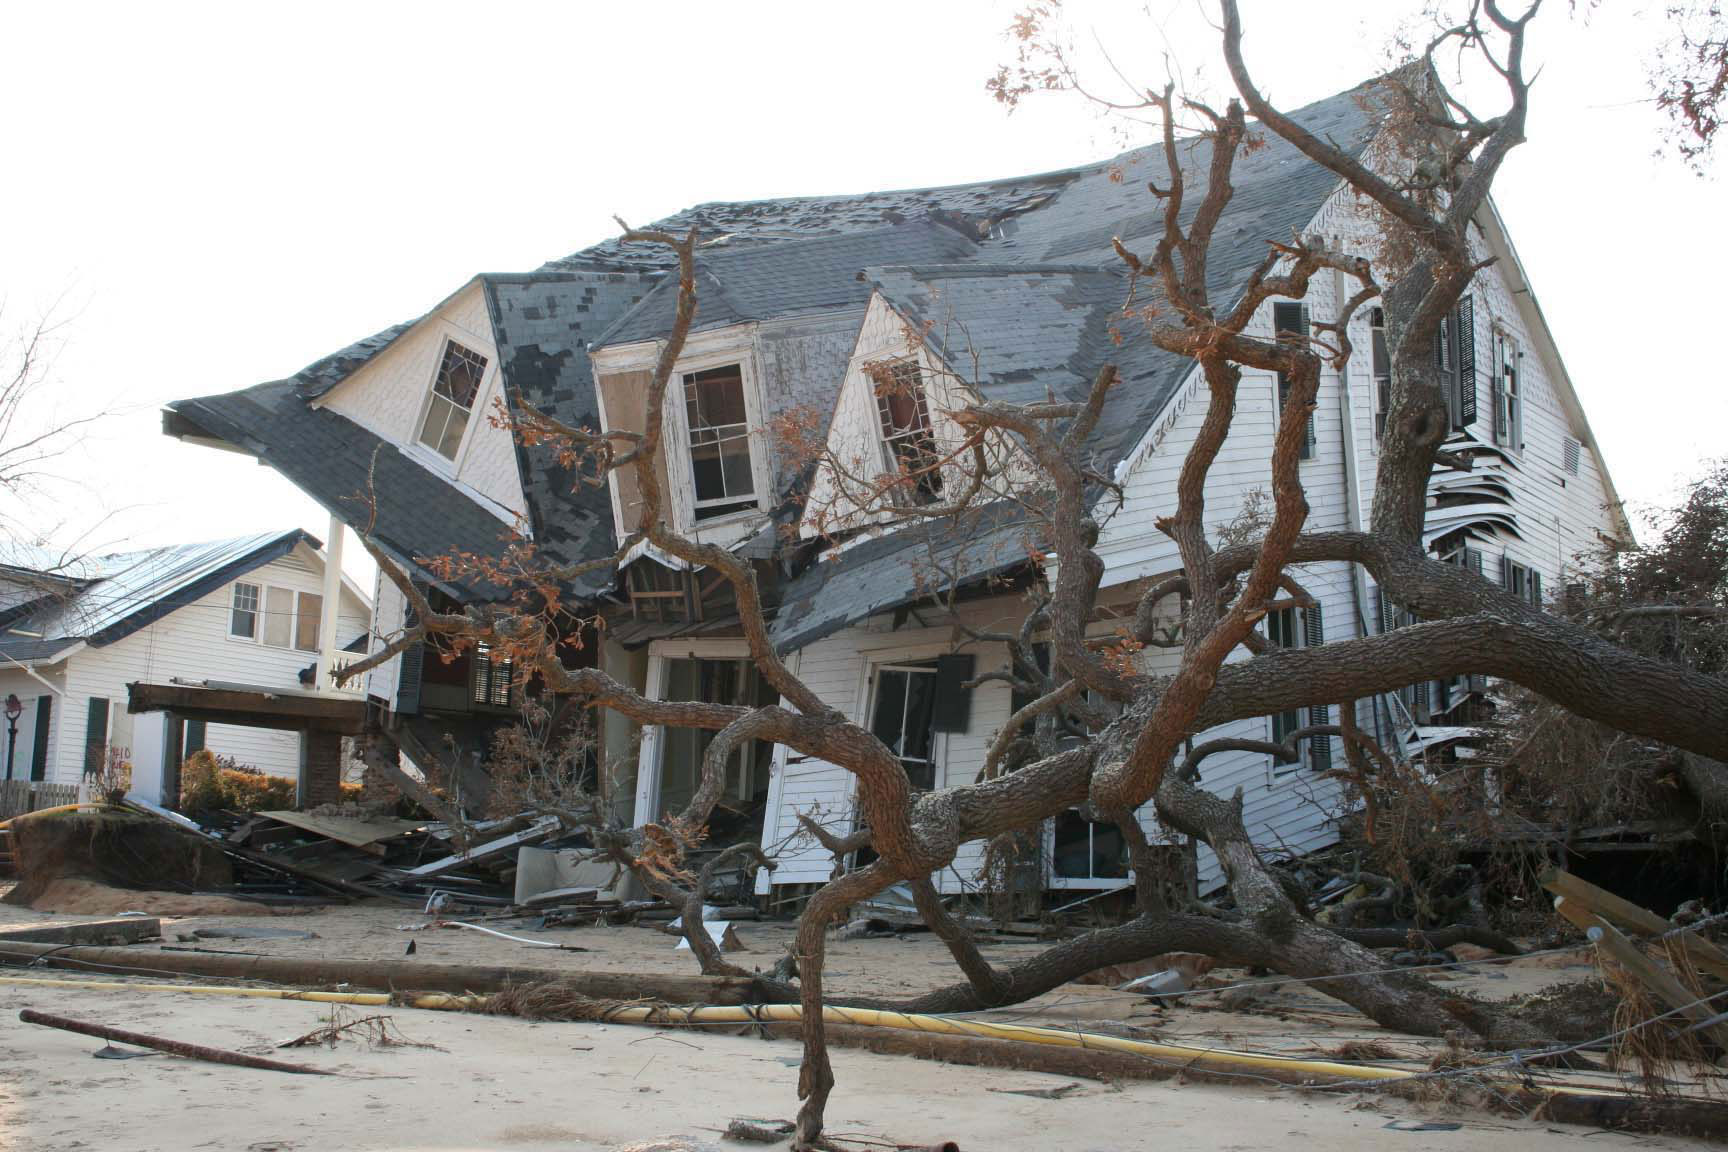 cause and effects of hurricane katrina essay You can likely name some recent hurricanes in the us that did major damage and killed many people: hurricane katrina in 2005, hurricane irene in 2011 and superstorm sandy in 2012 are just a few.